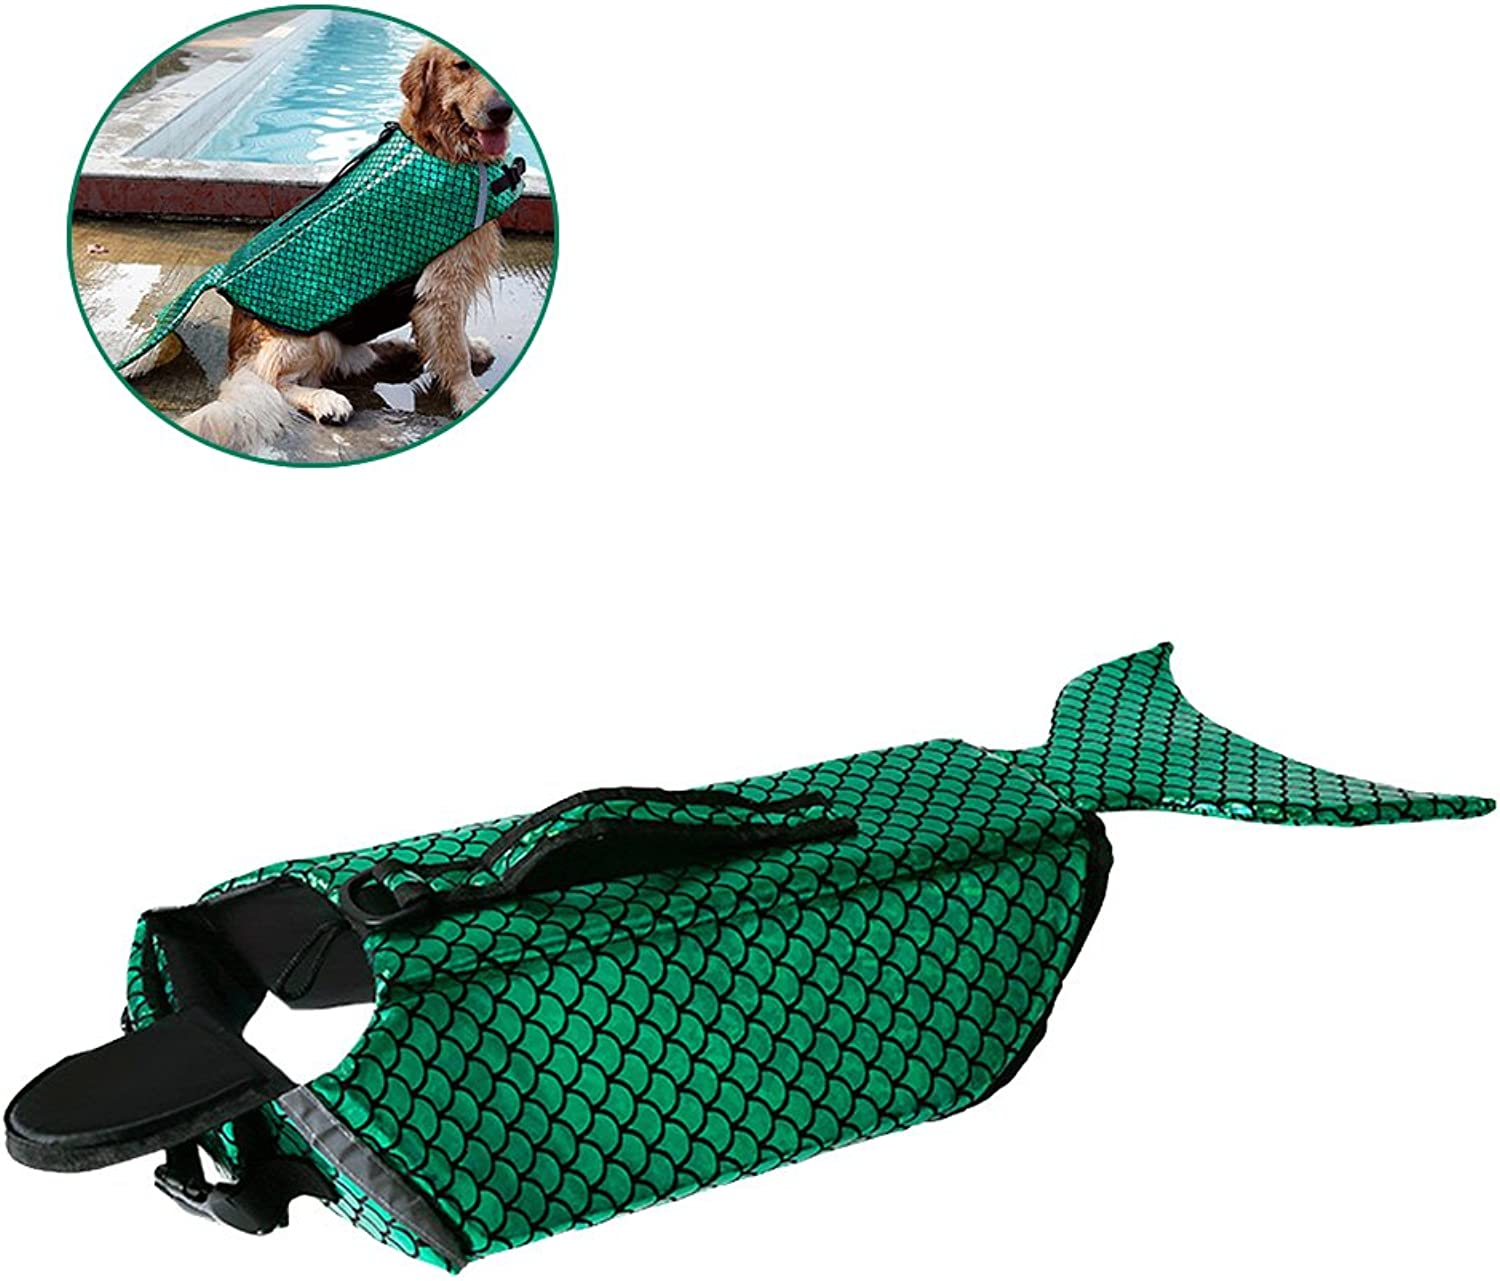 Artiron Dog Sequins Life Jacket Vest Saver Safety Swimsuit Preserver with Reflective Stripes Adjustable Belt for for Small Medium Large Size Dogs (Green, M)